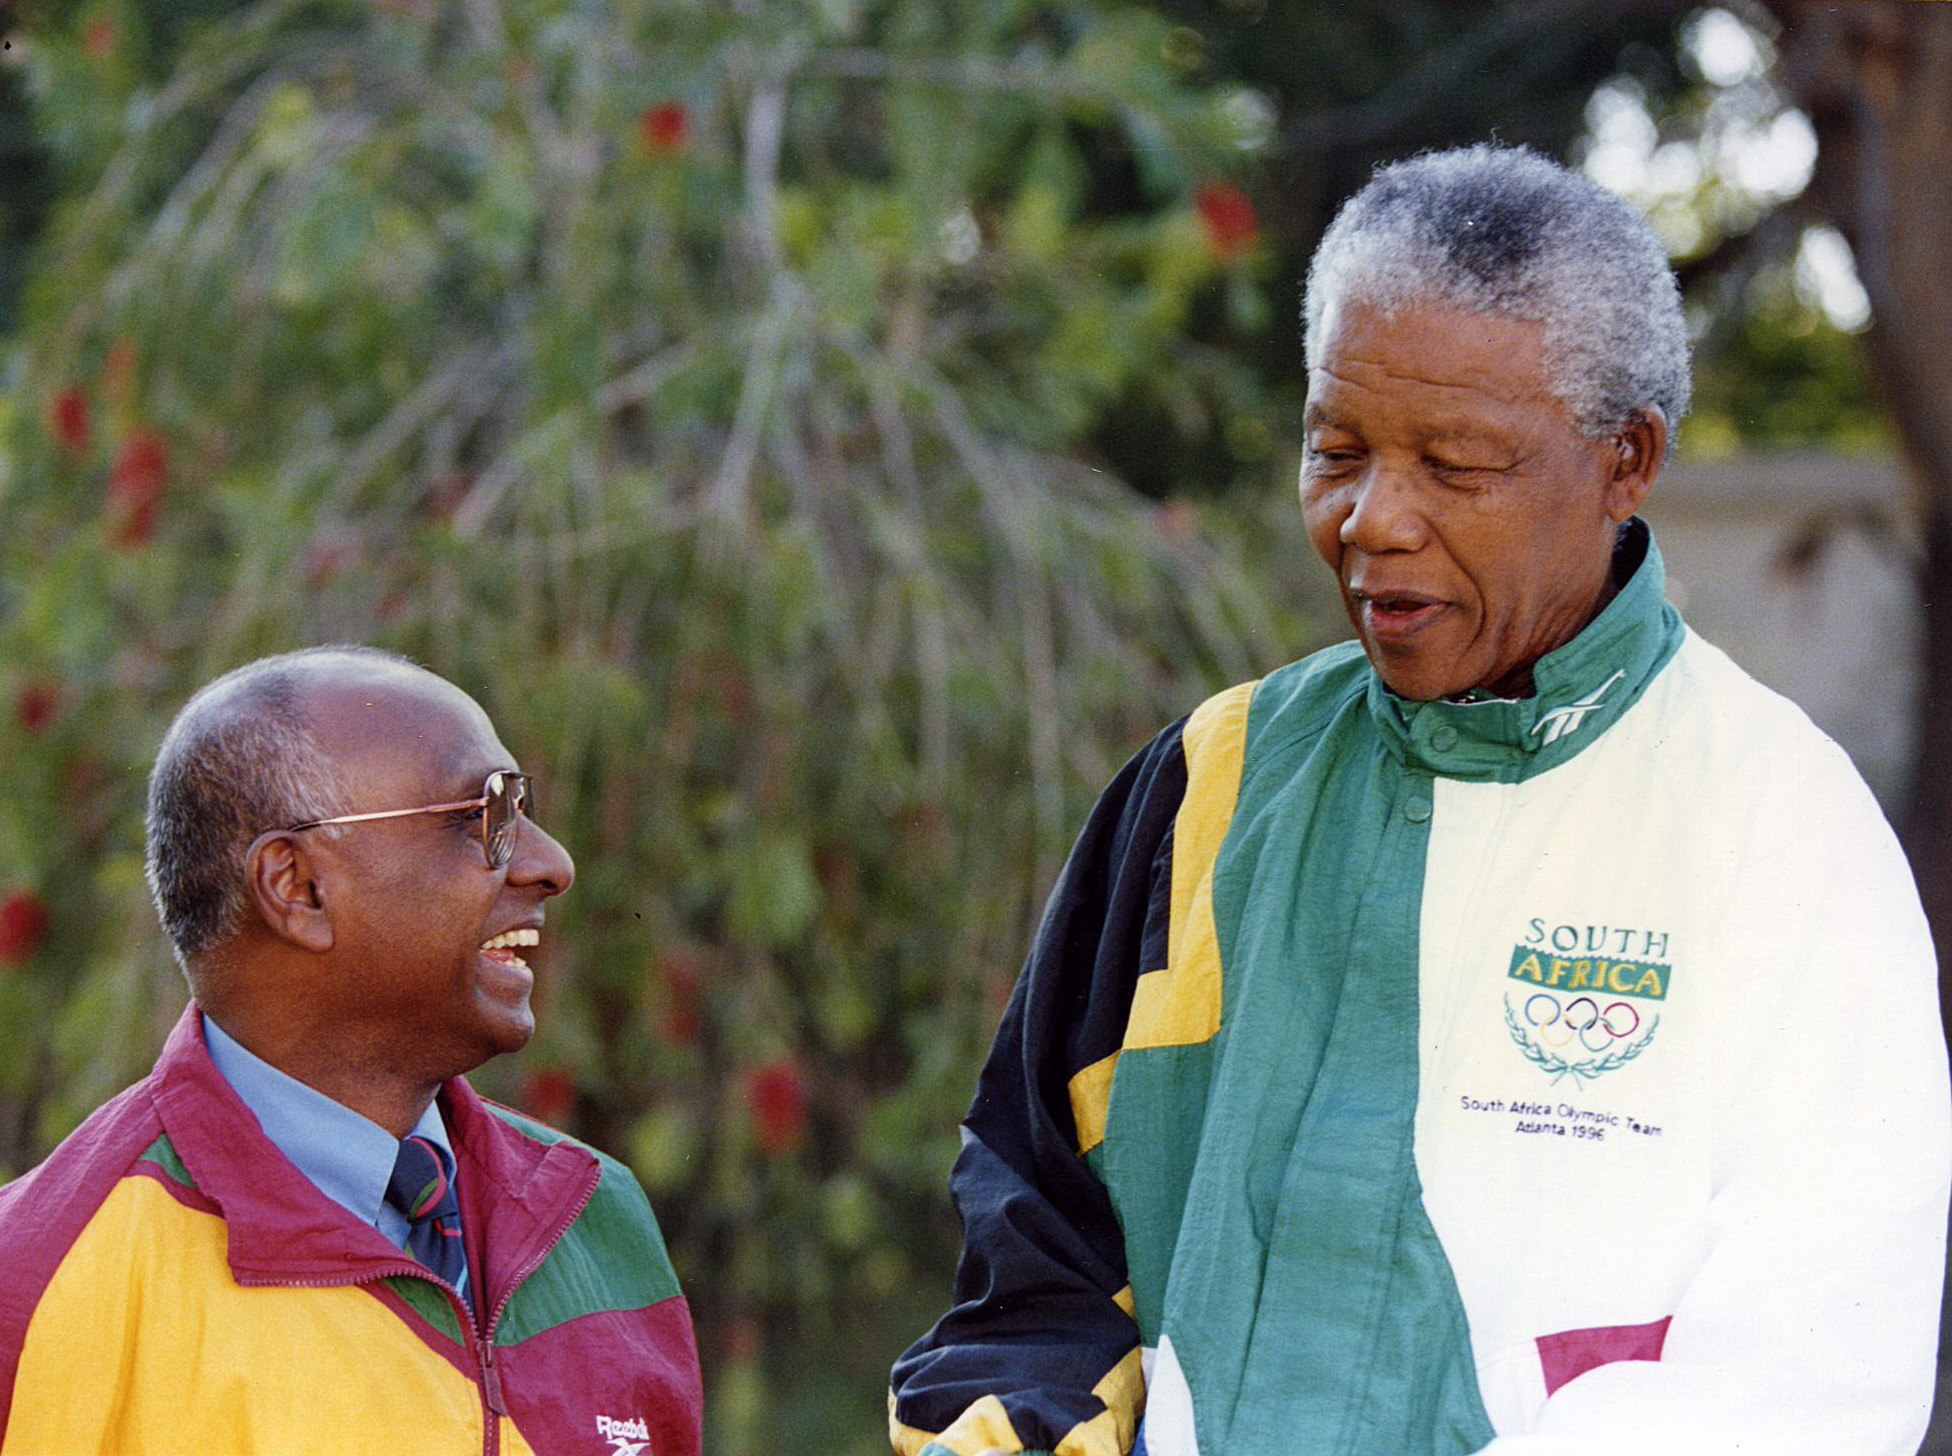 Sam Ramsamy pictured with South Africa's President Nelson Mandela, who referred to Ramsamy as his